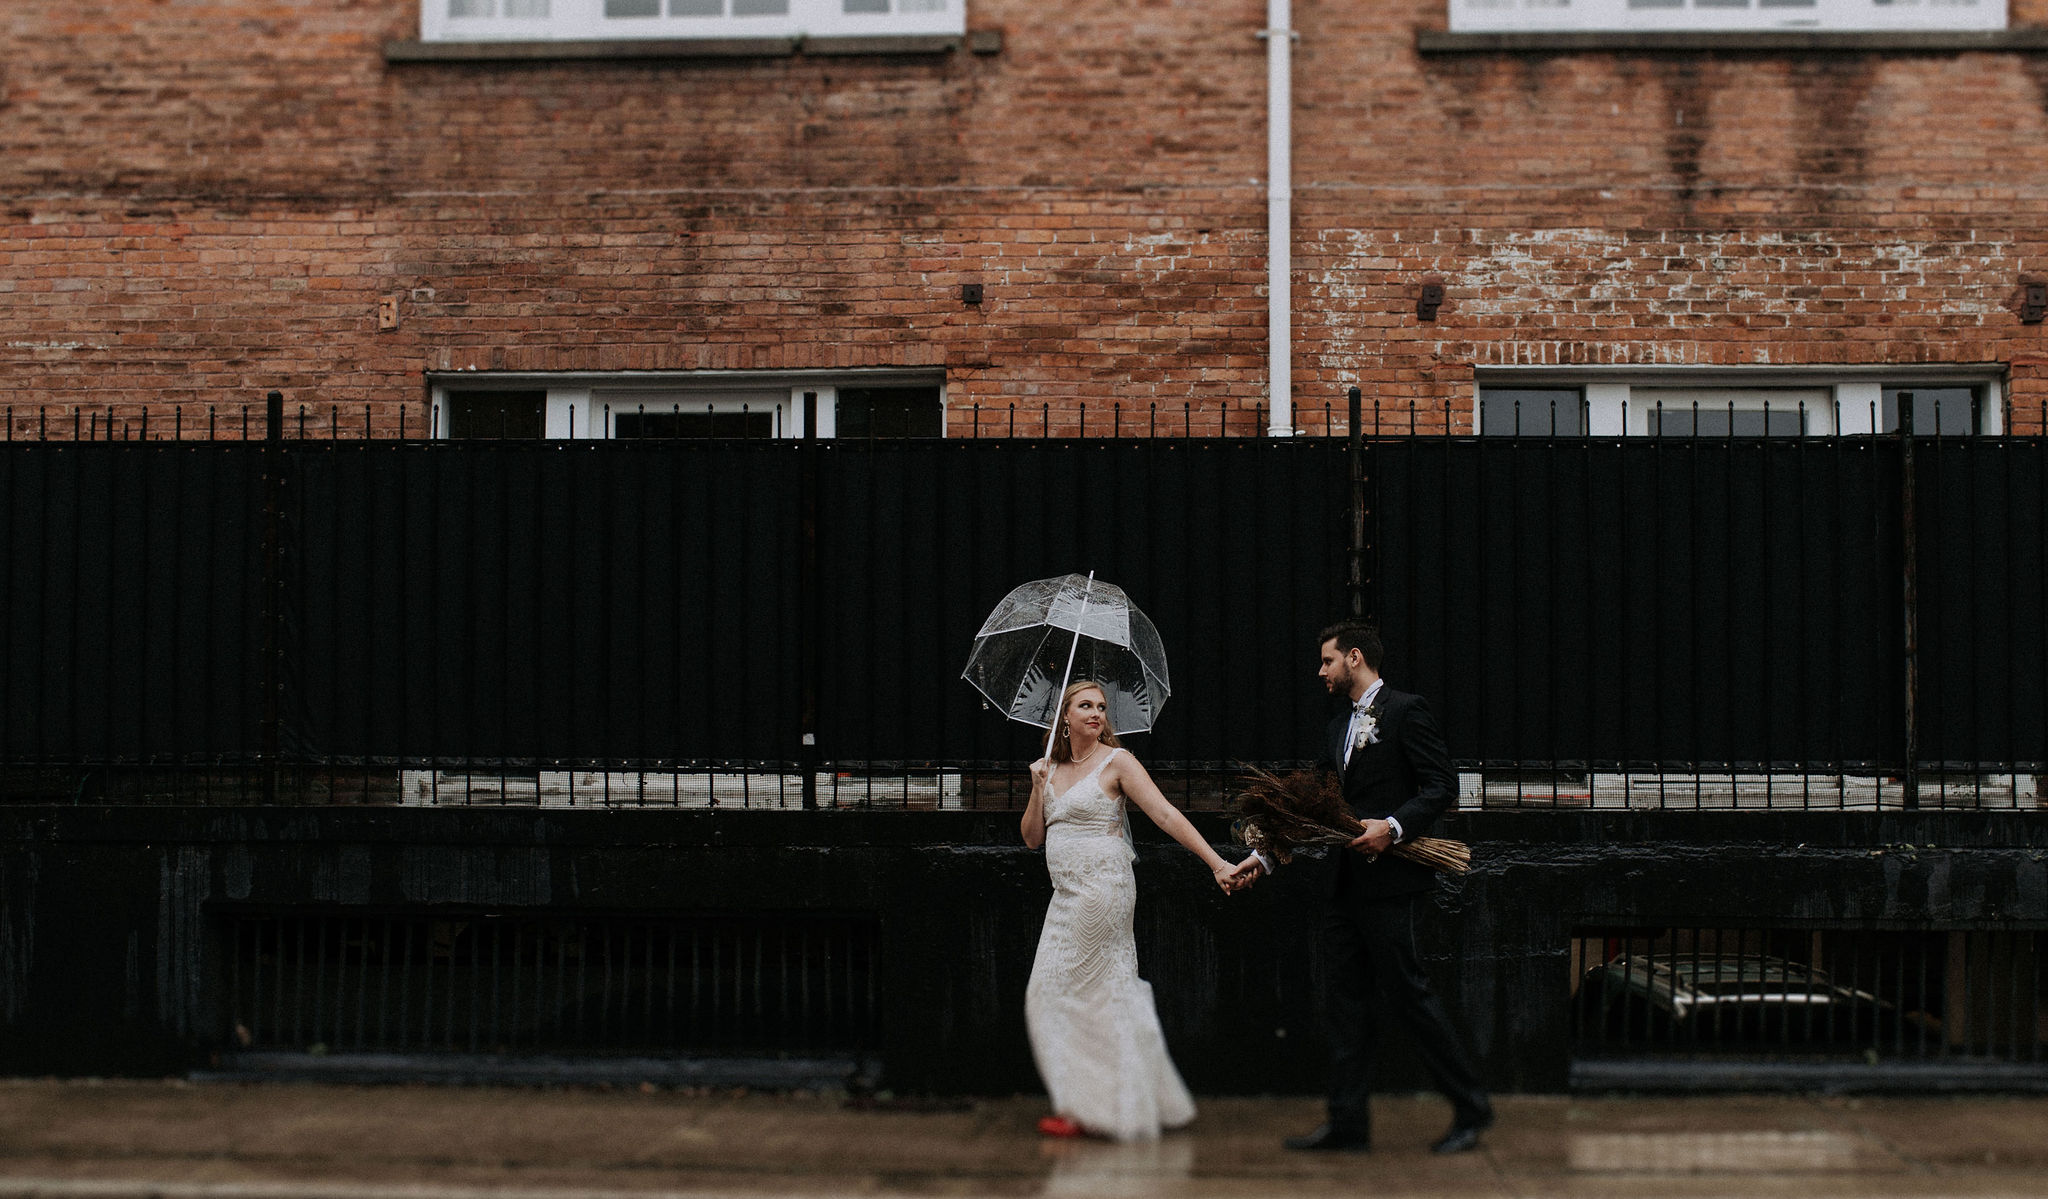 The Say Rain On Your Wedding Day Is Good Luck